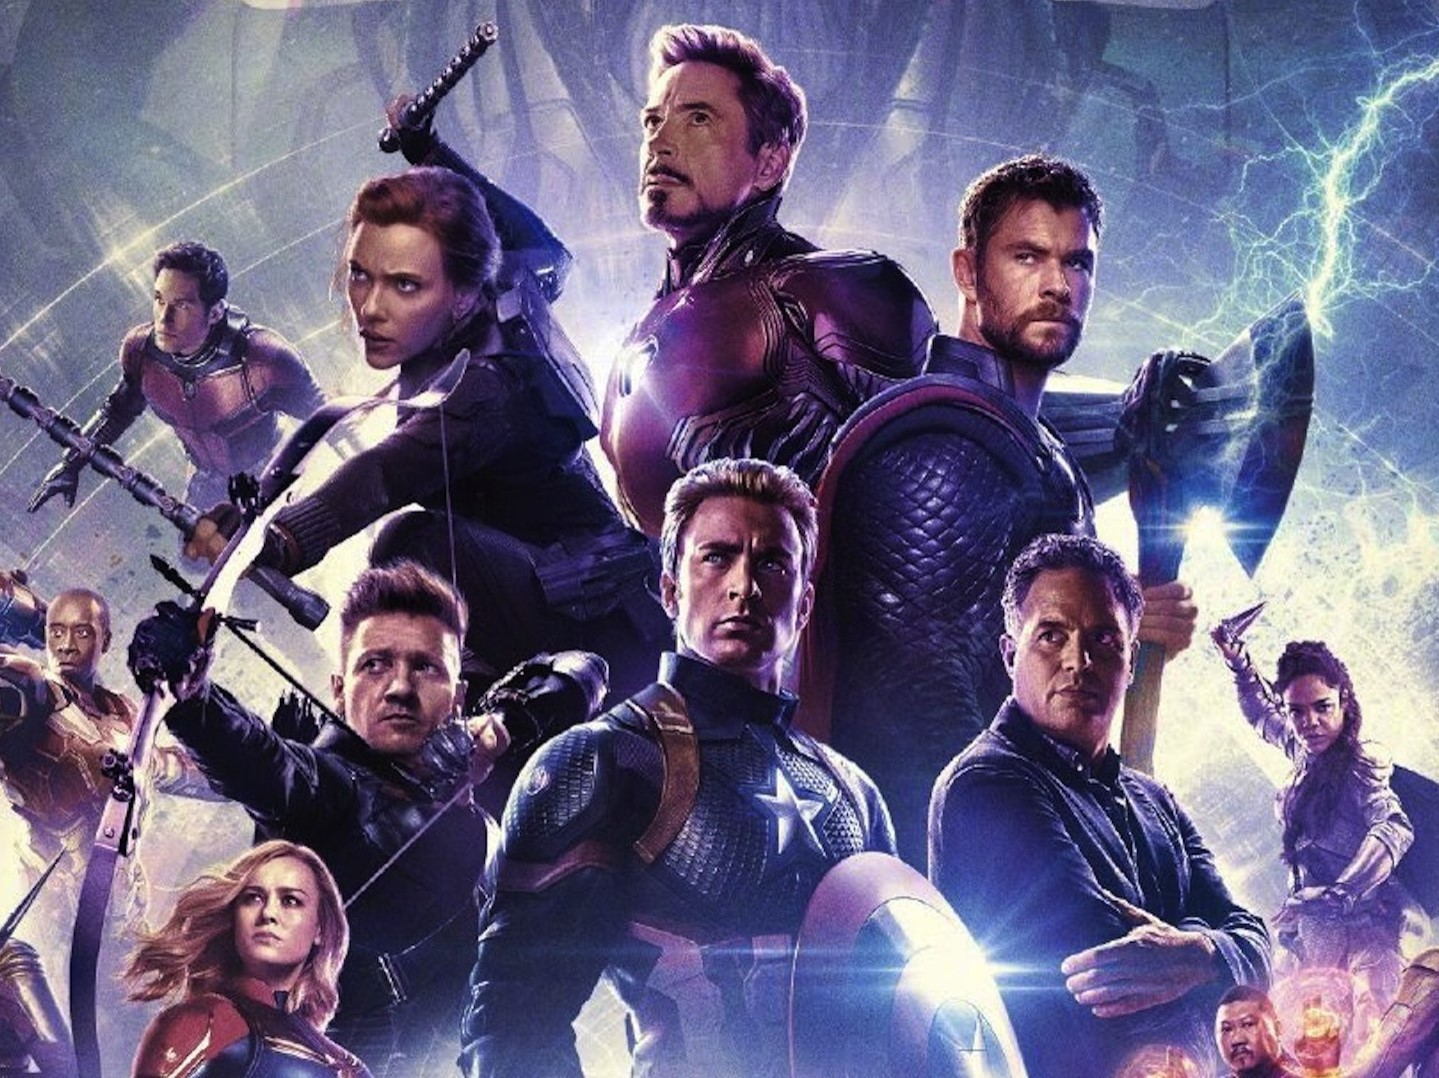 Everyone has a favourite Marvel movie, but how accurate is it to your zodiac sign? You just have to see which Marvel movie represents you yhe best!